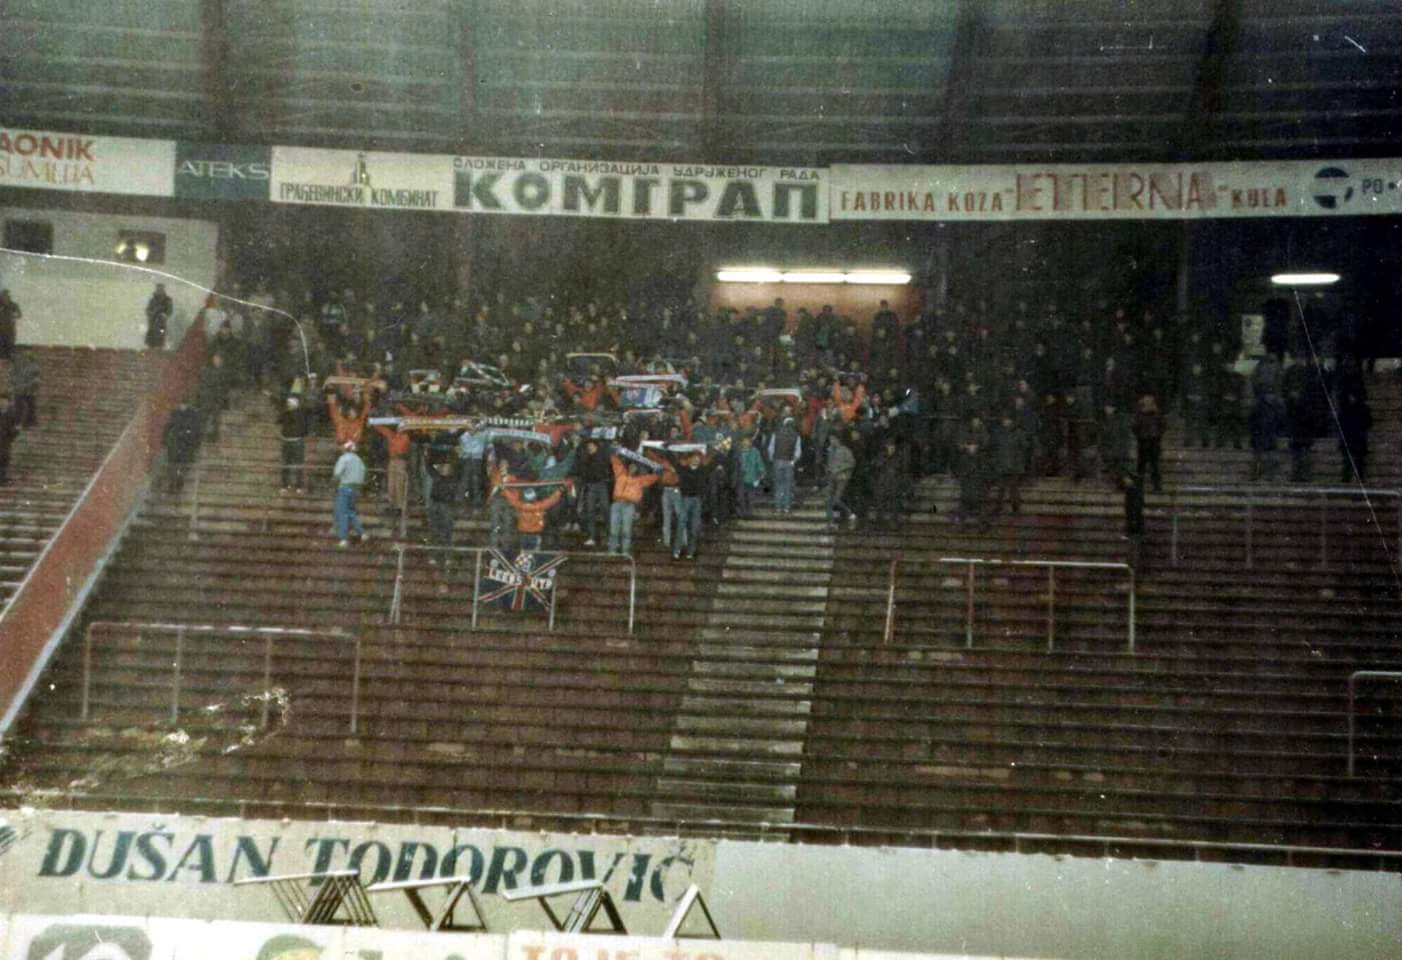 1989,belgrad,red star v DZFC,Leeds